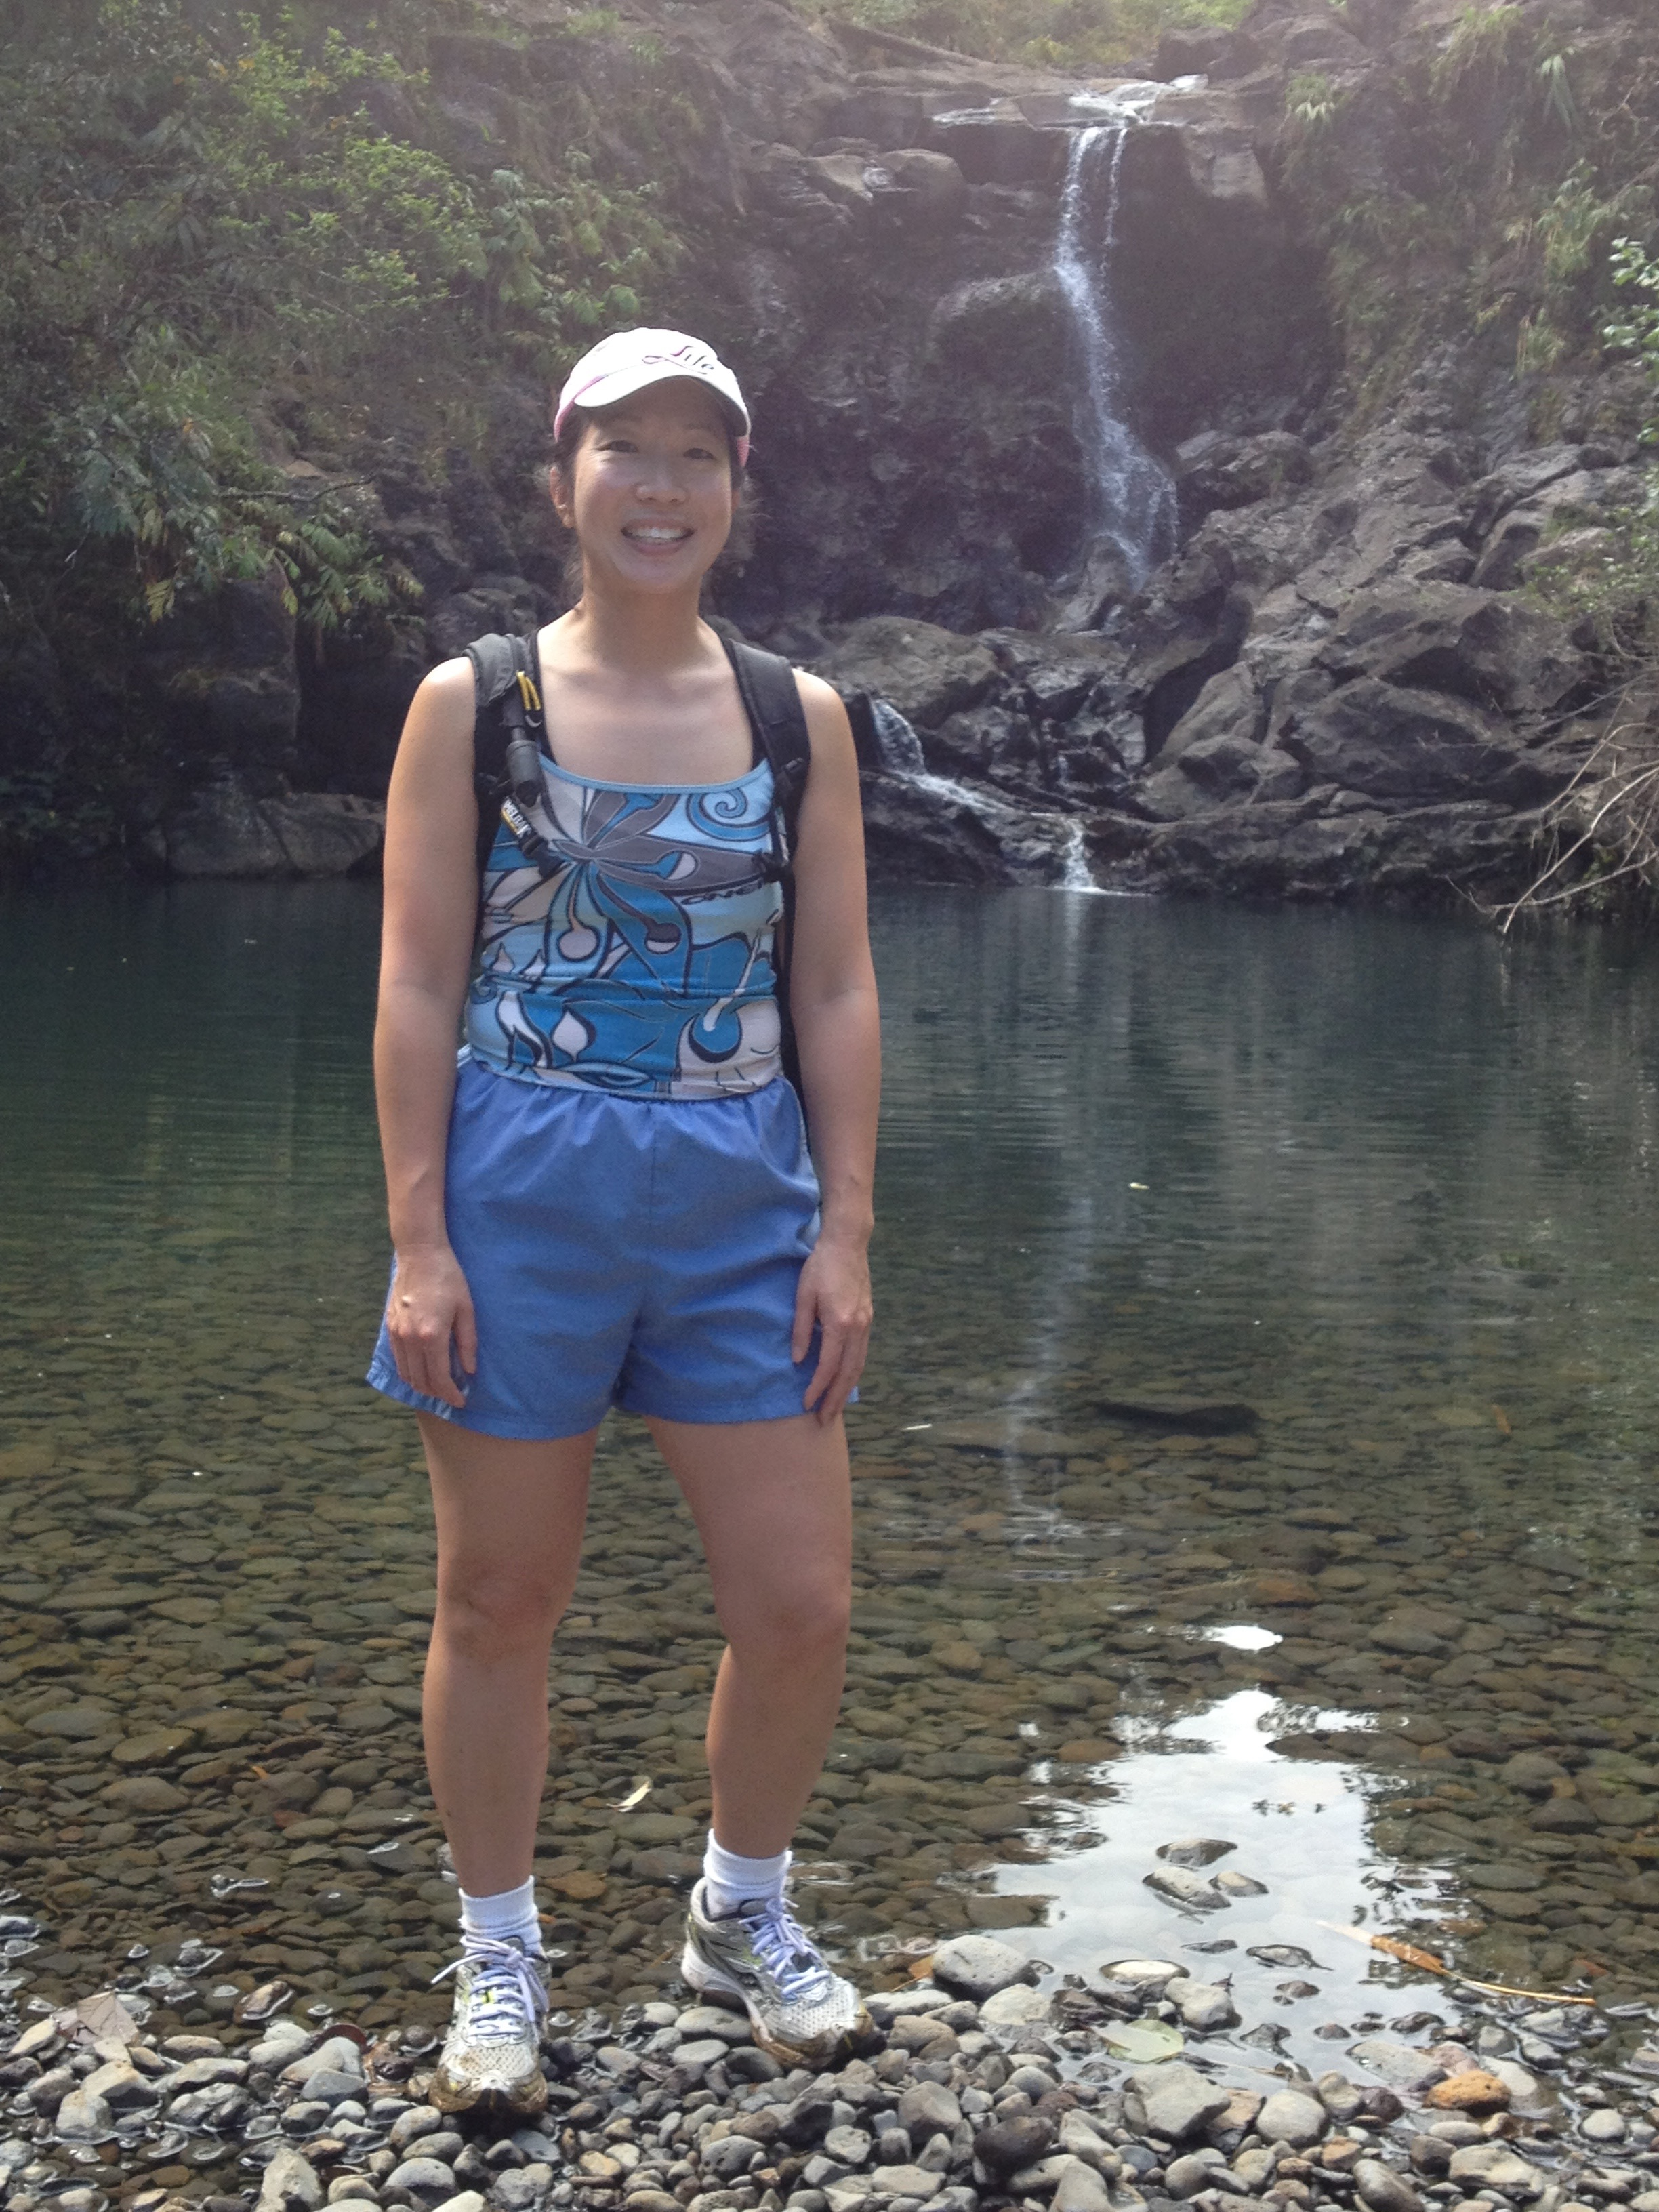 Author of post wearing shorts and a swim tank top, running shoes and socks, standing by a river in Maui, Hawaii.